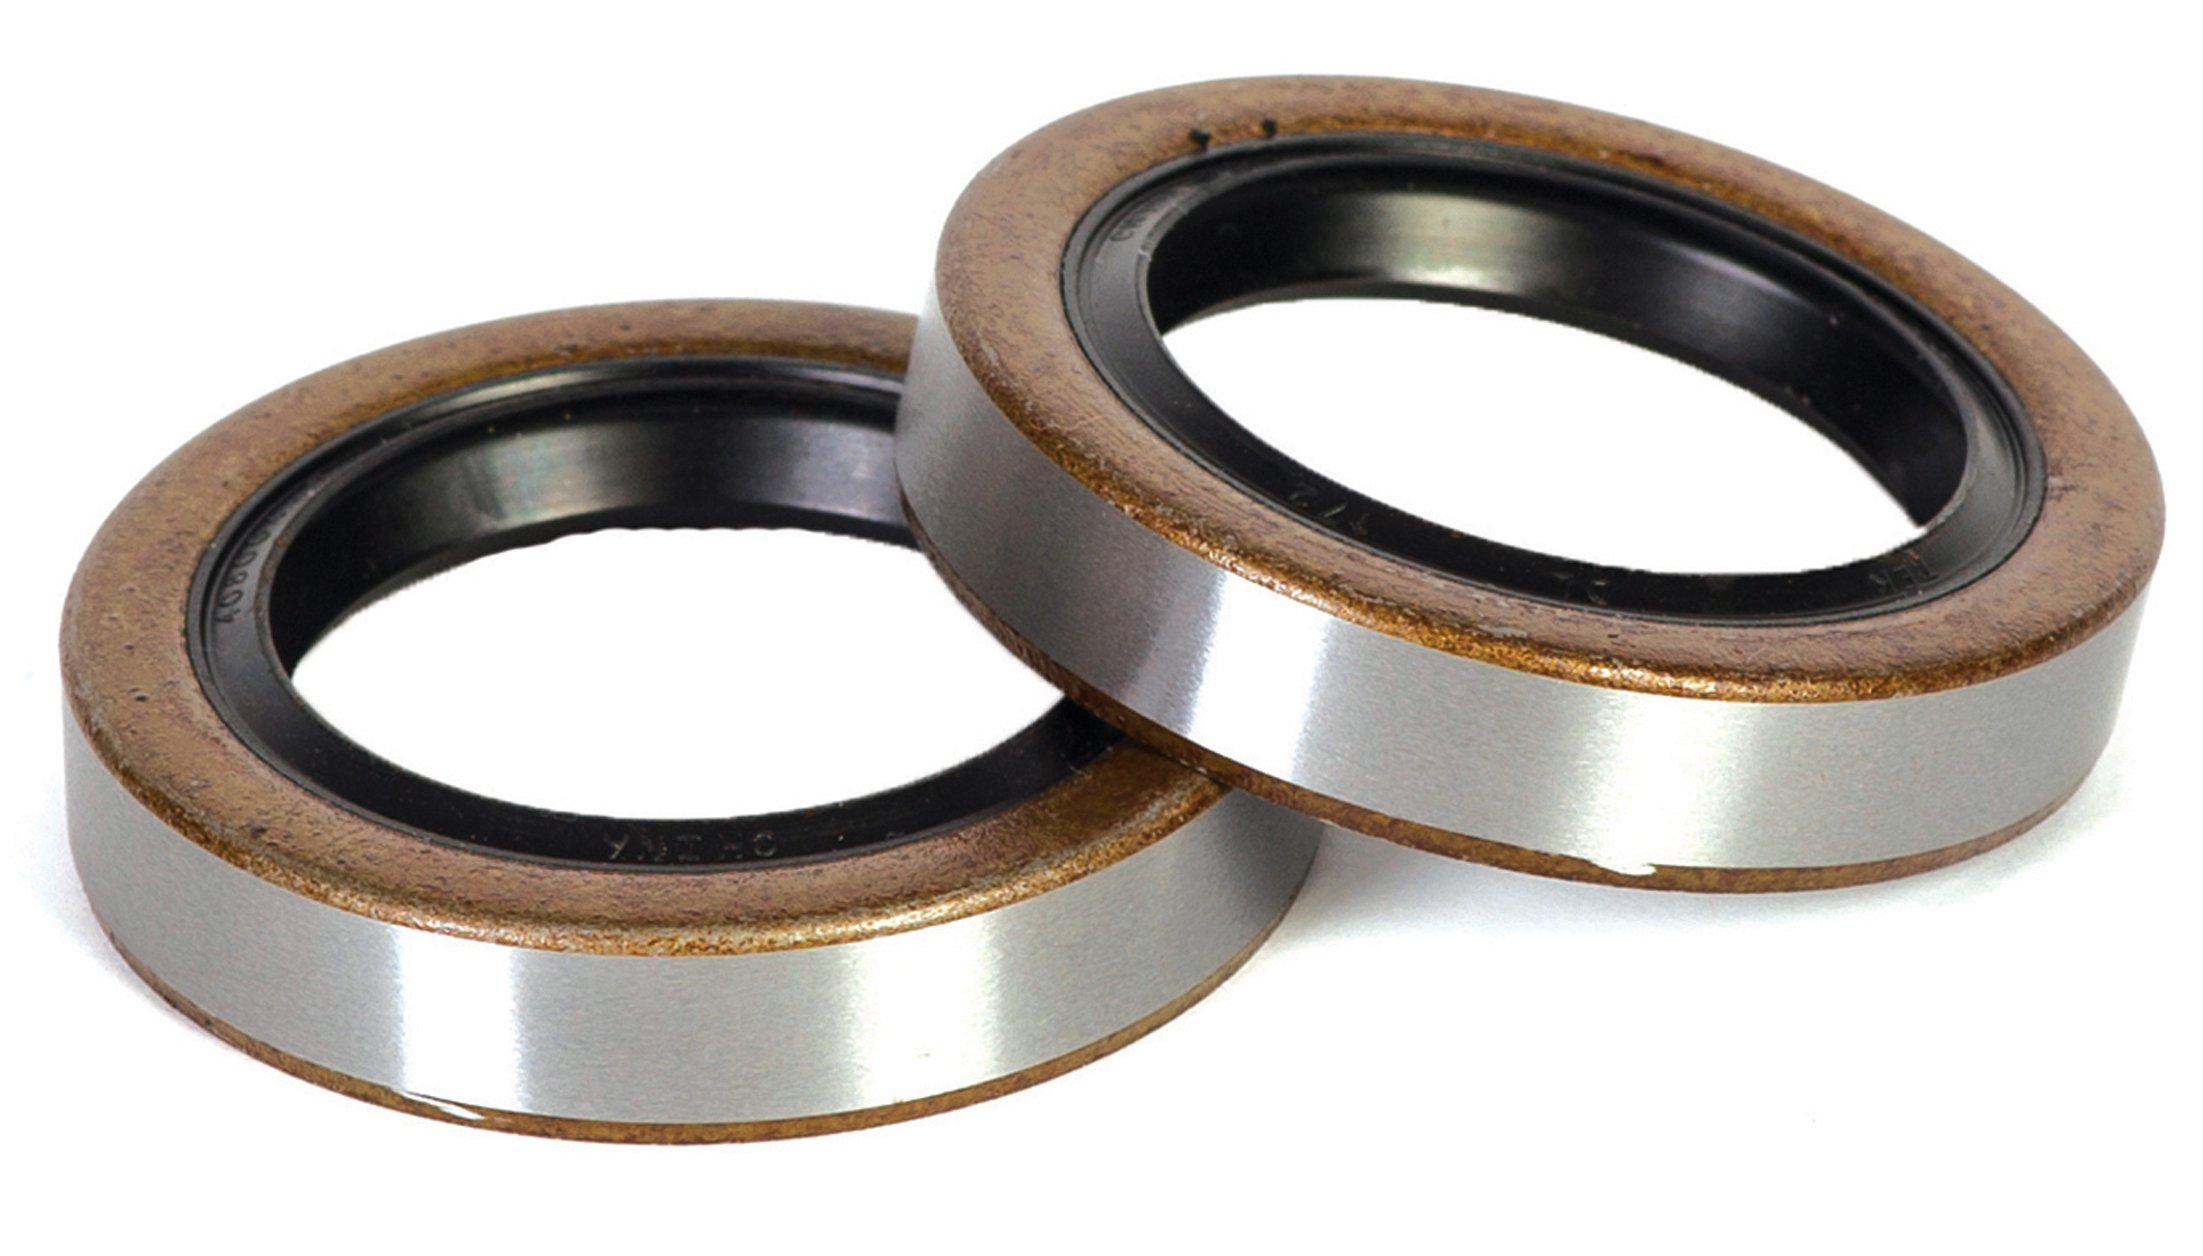 Husky 30828 Grease Seal for 10'' x 2.25'' Hub Drum and Idler Hubs, (Pack of 2)